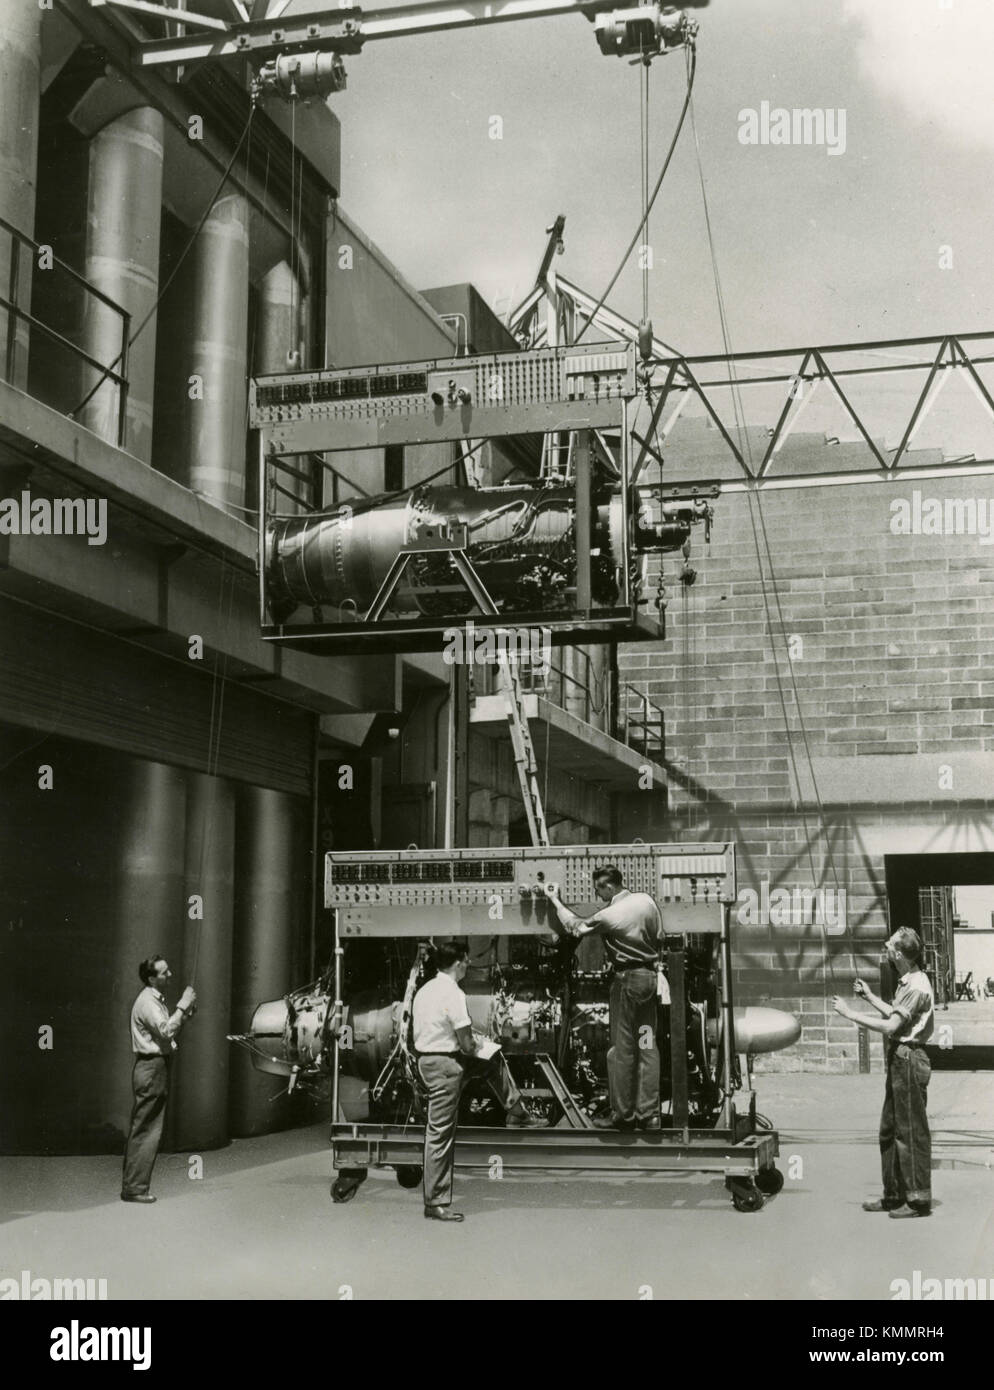 Loading aircraft engines, 1940s - Stock Image